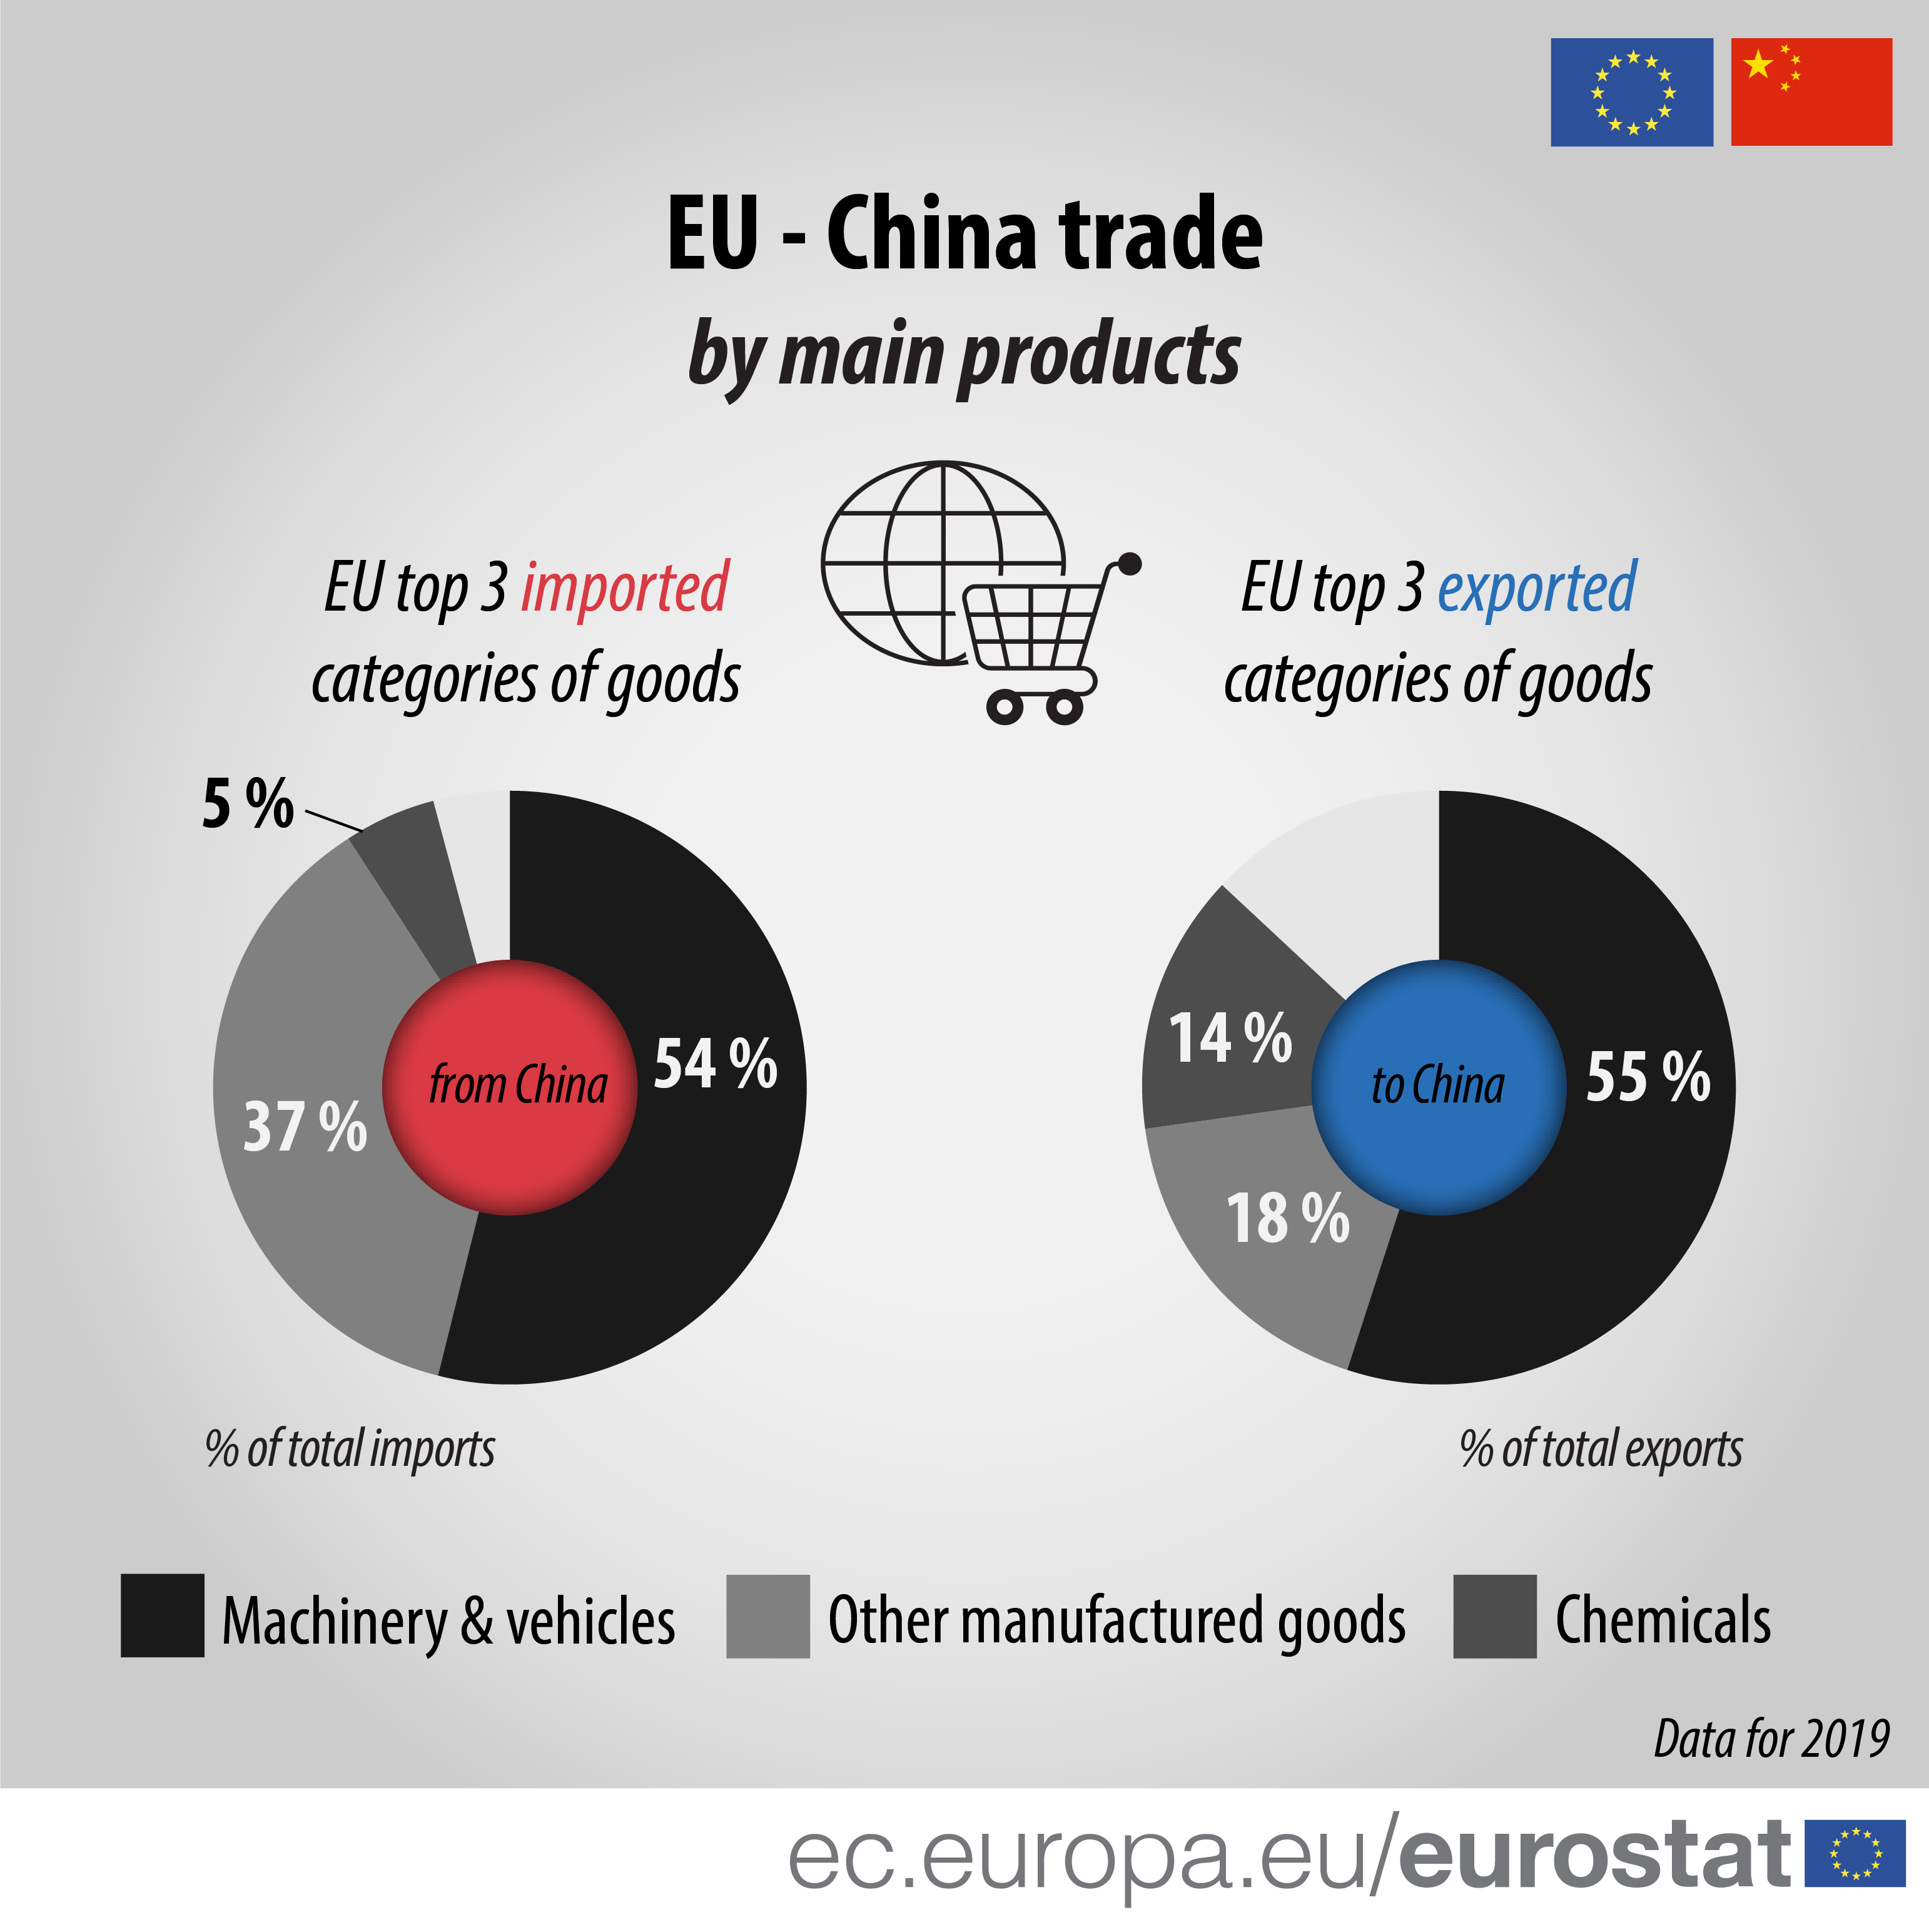 EU - China trade by main products